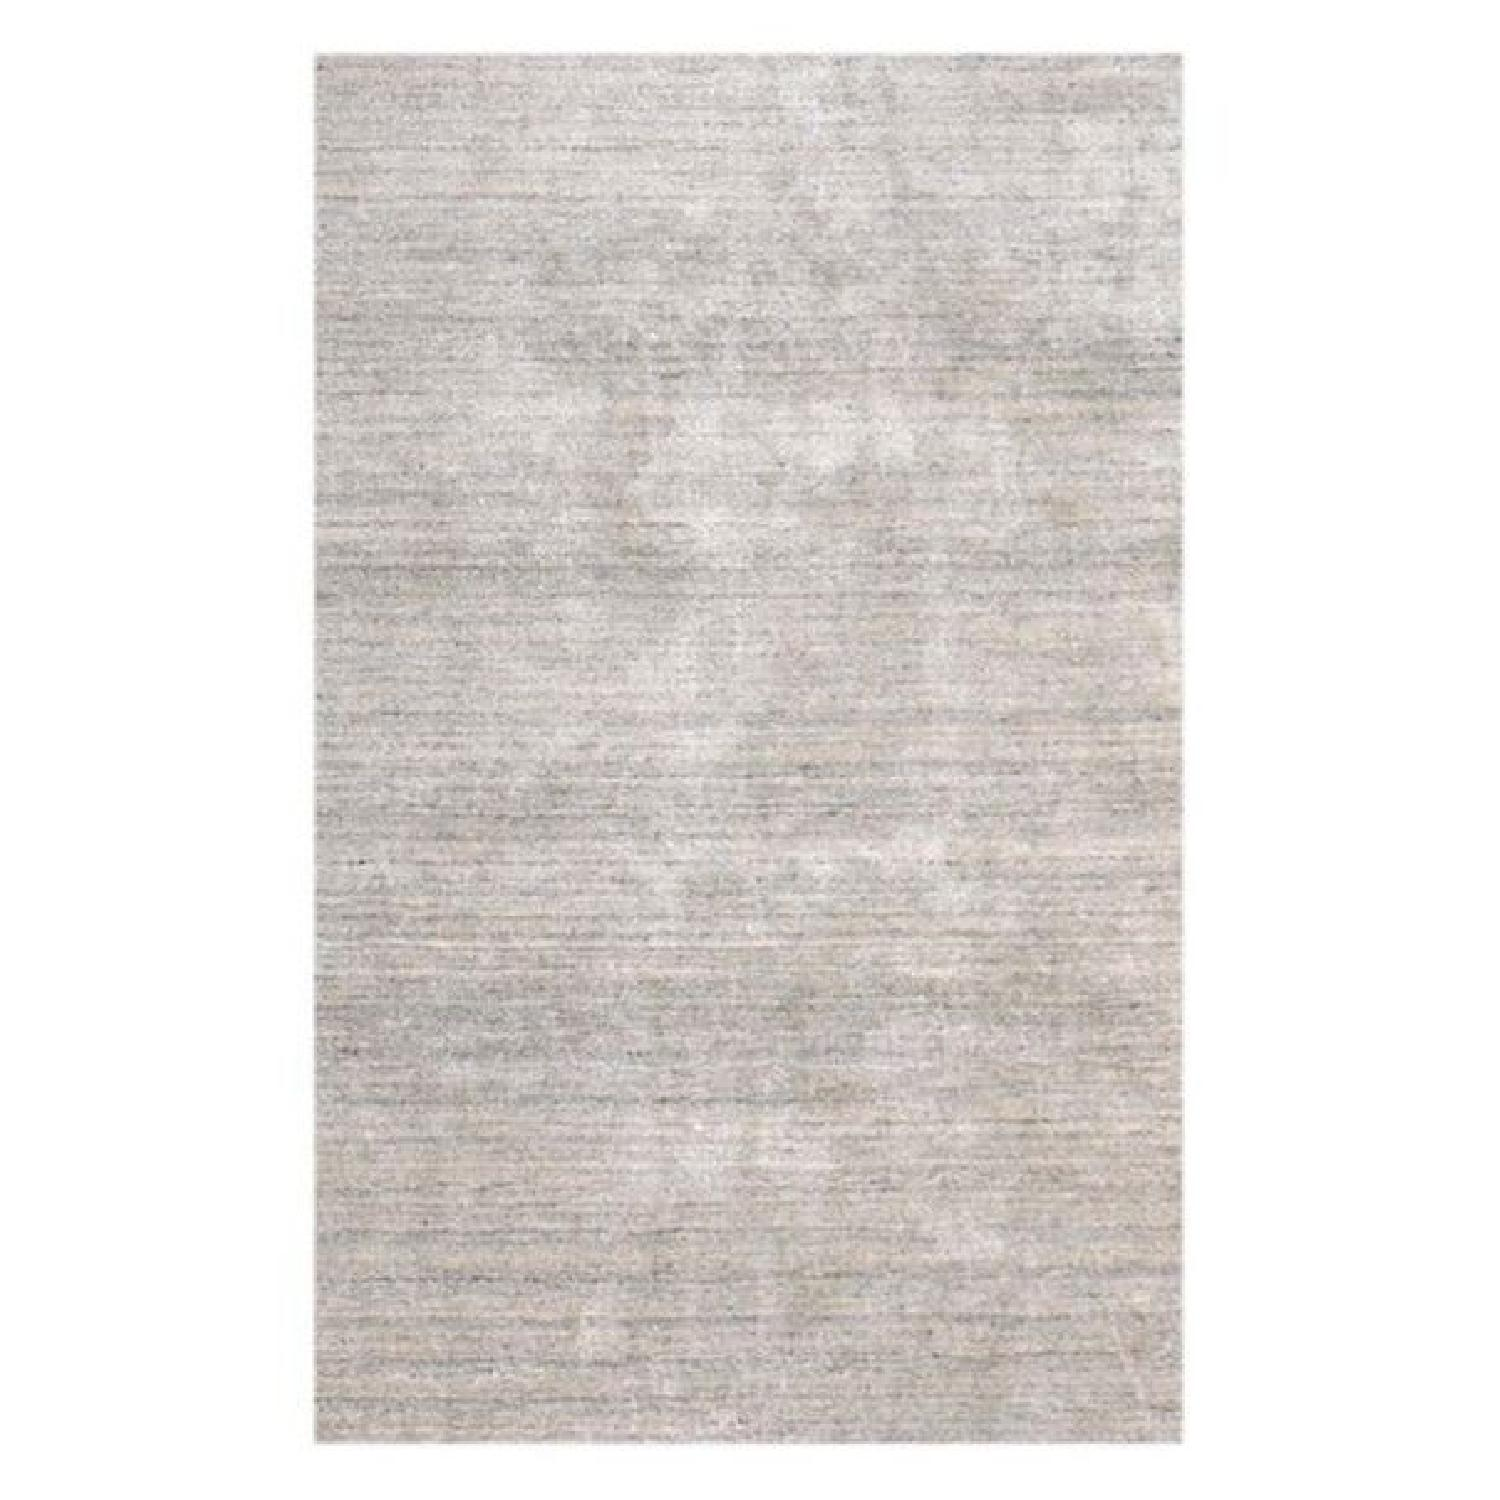 Mitchell Gold + Bob Williams Shimmer Rug in Mink